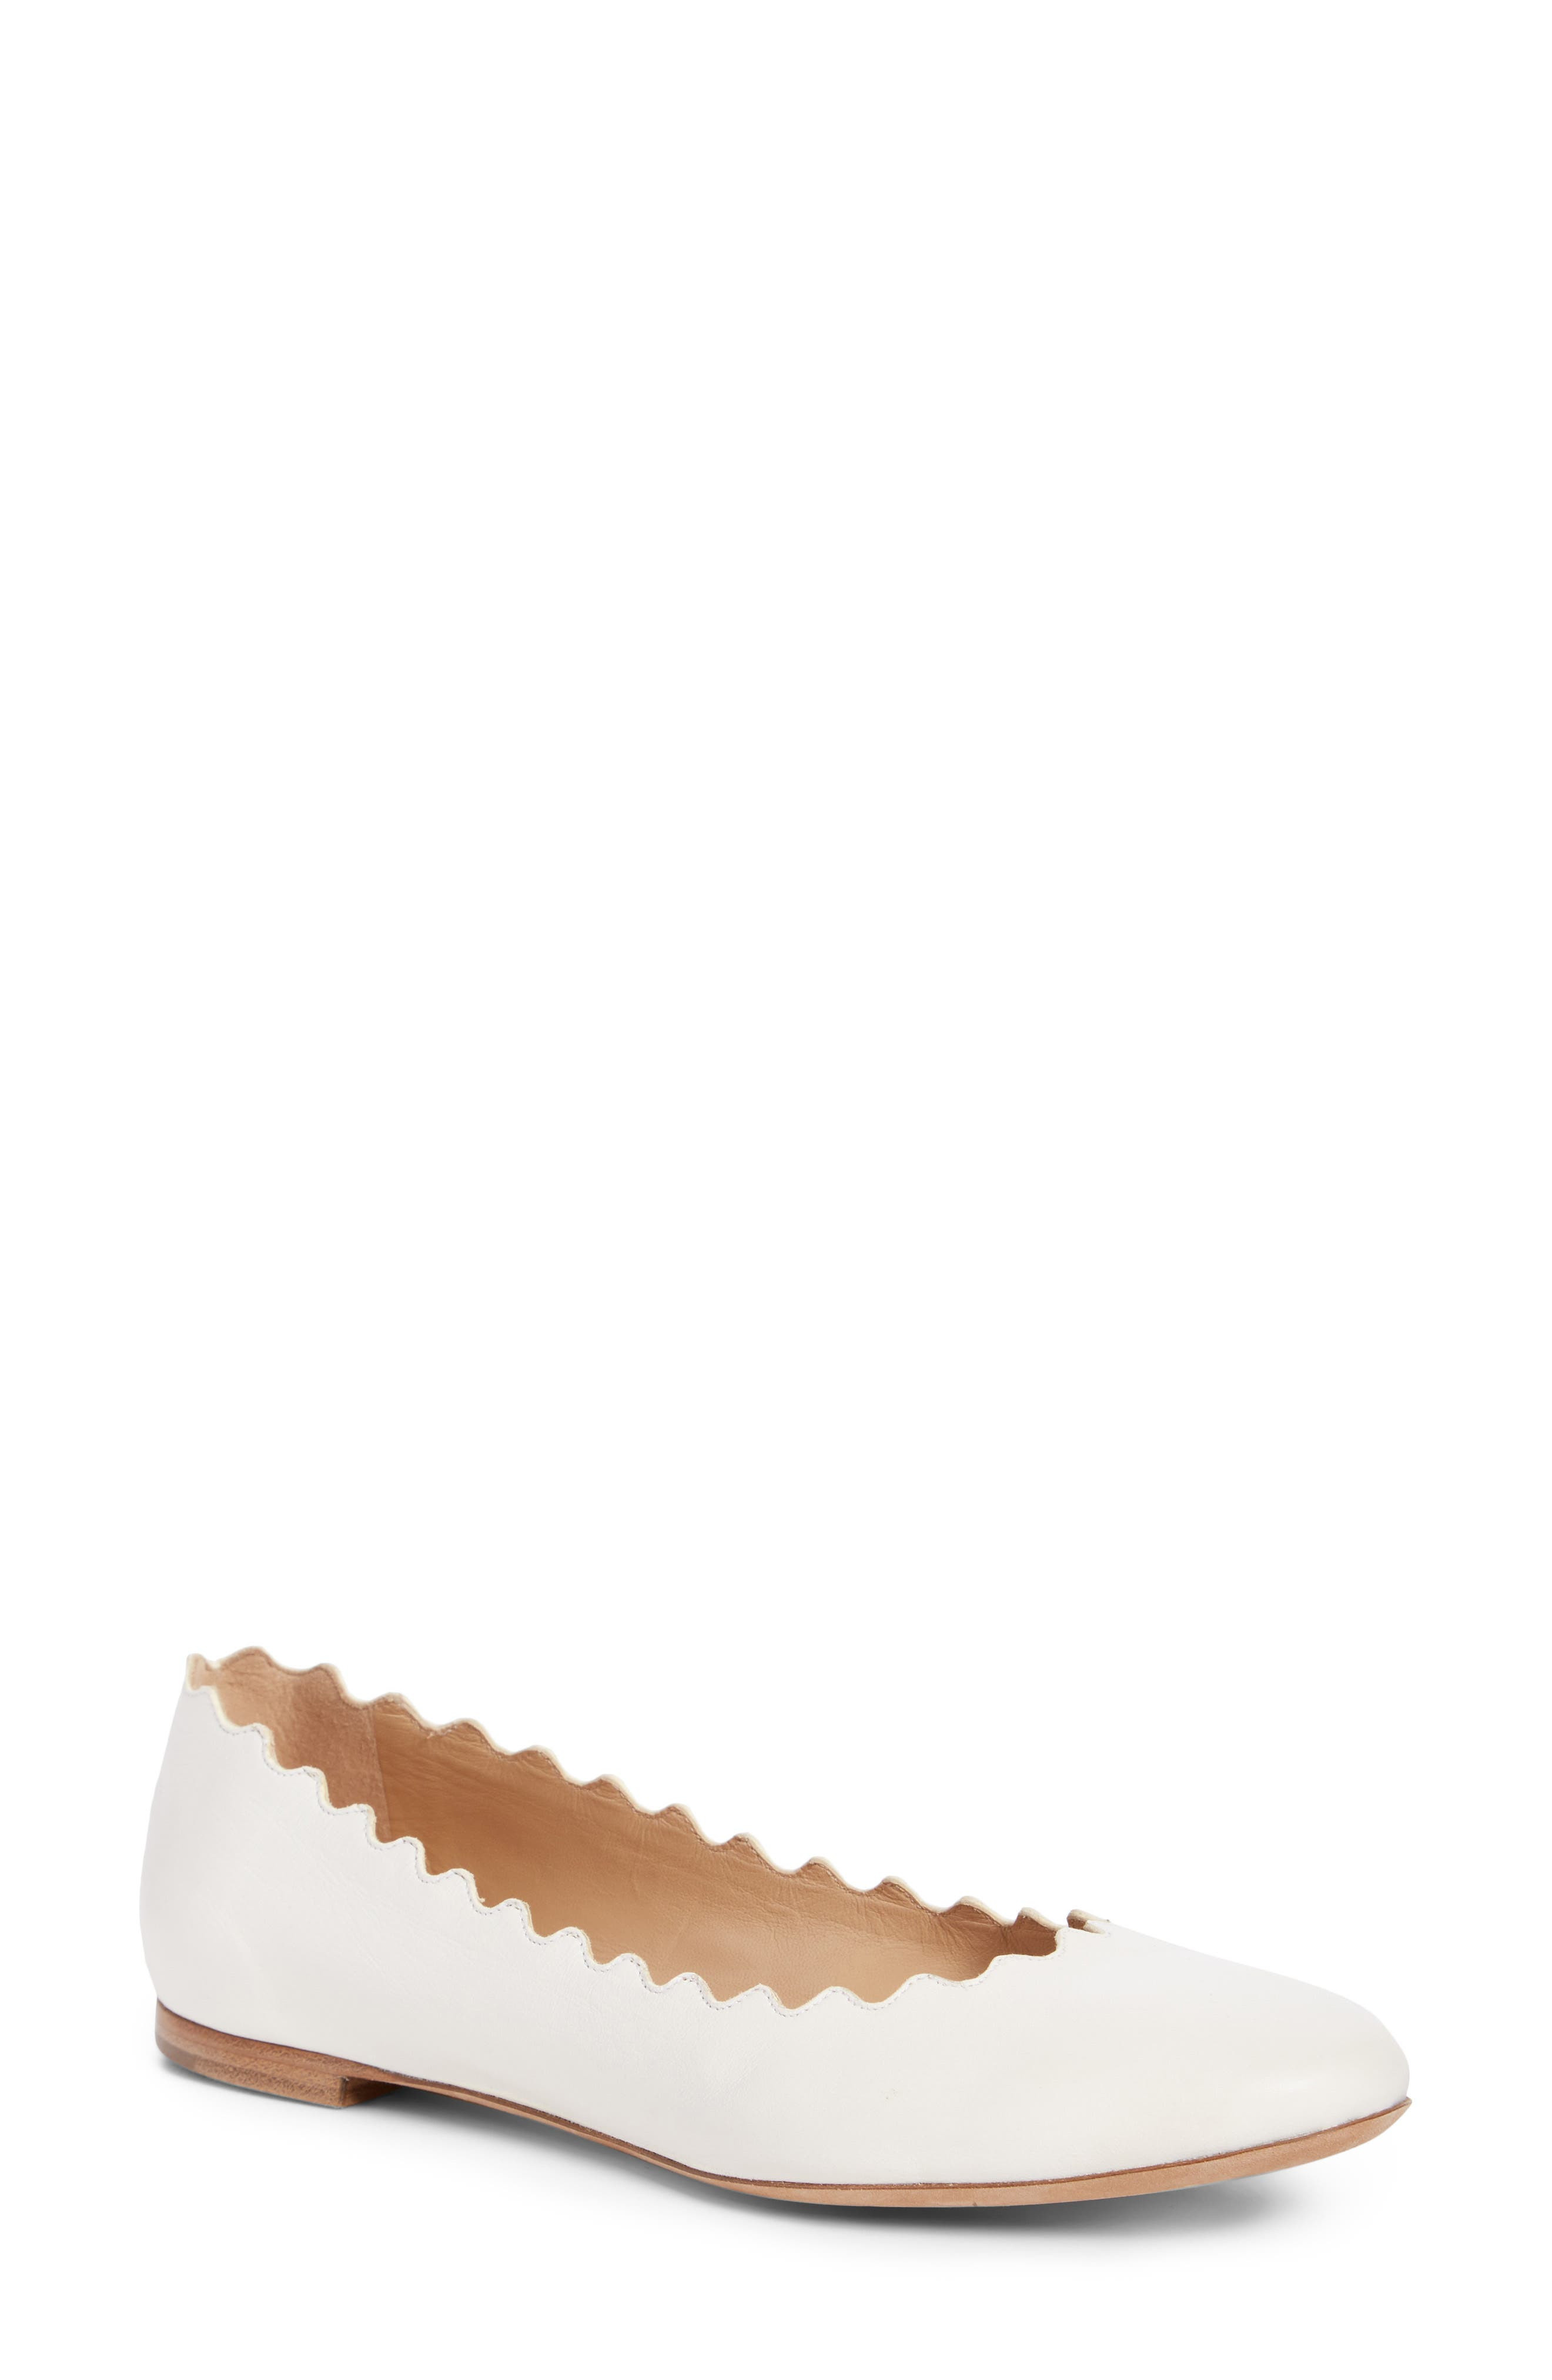 Chloé Lauren Scalloped Ballet Flat Women